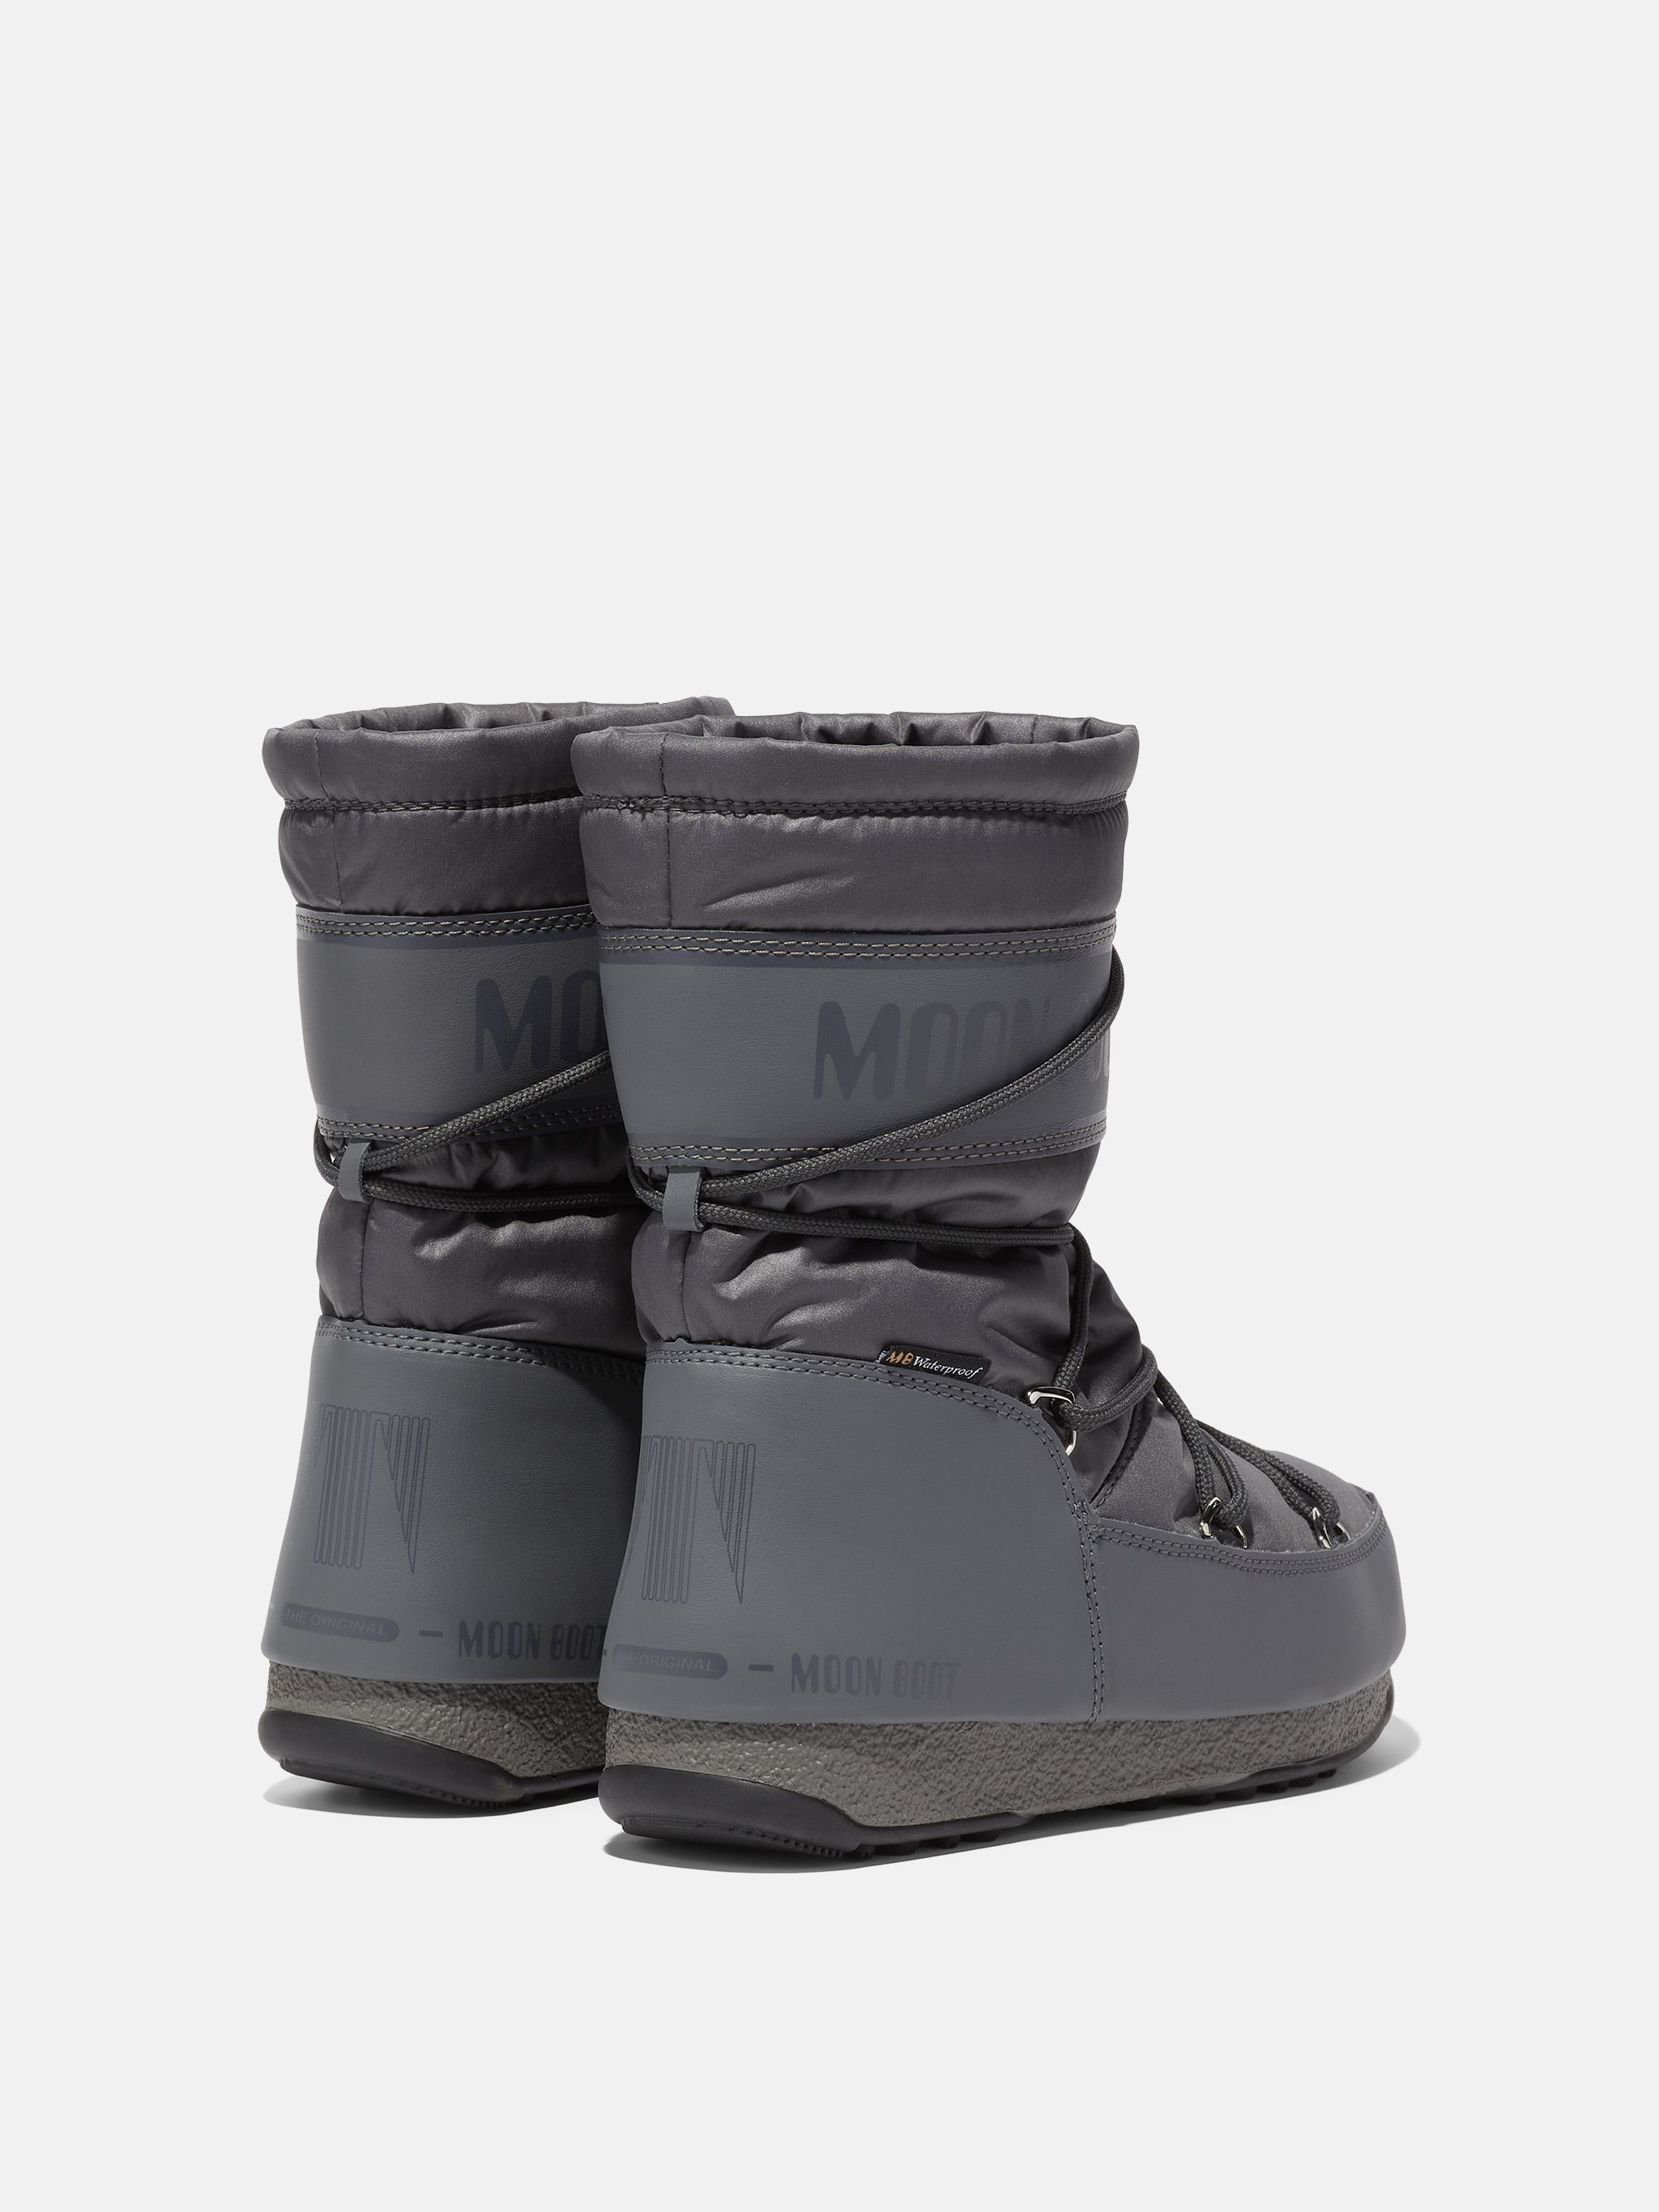 PROTECHT MID GREY BOOTS